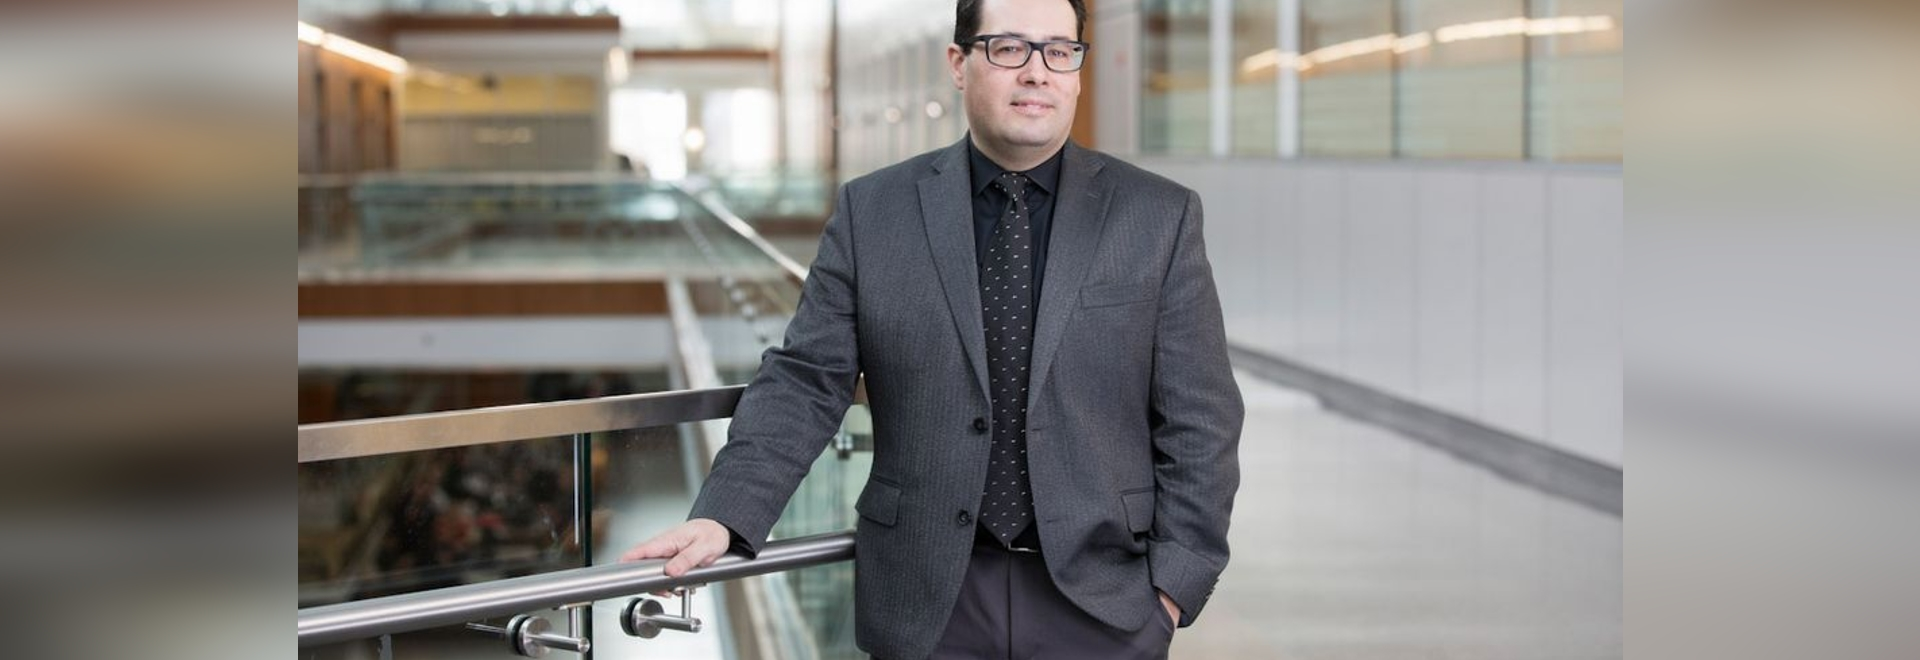 Dr. Walter Siqueira from the University of Saskatchewan College of Dentistry is the lead researcher in a study aimed at developing a test that identifies SARS-CoV-2 peptides in saliva.